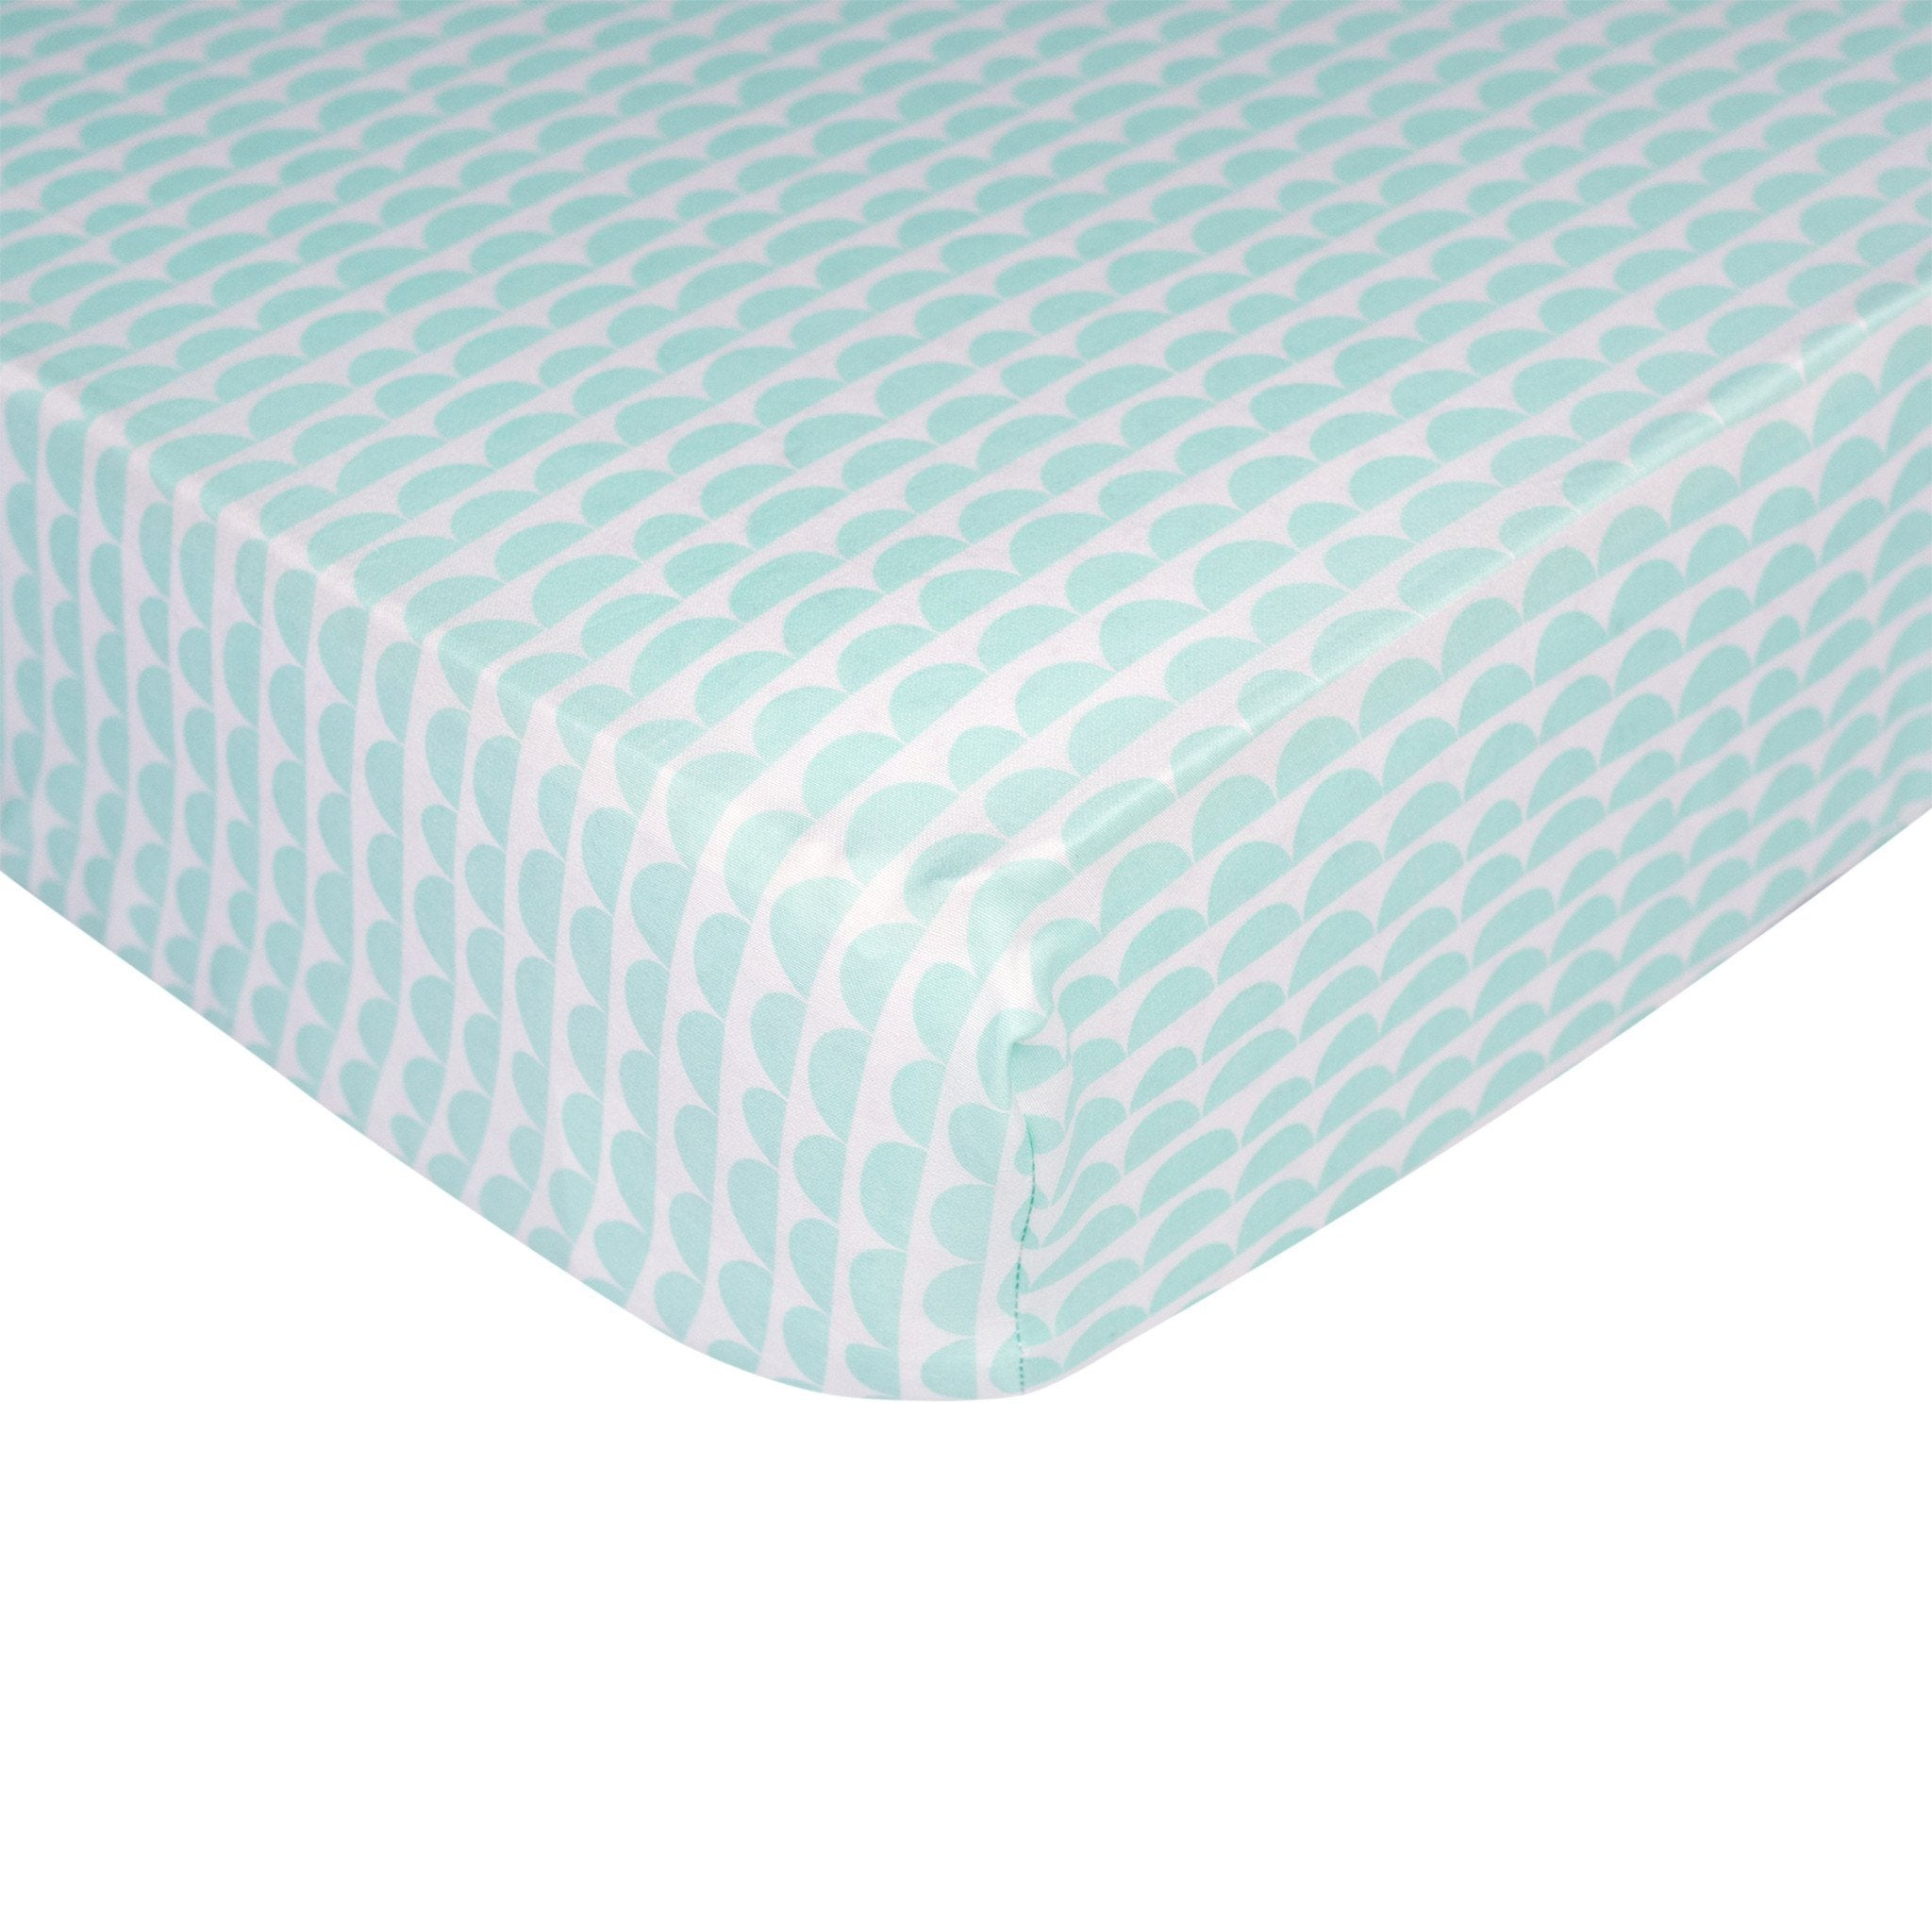 Fitted Sheet - Mint Scallop - Living Textiles Co.